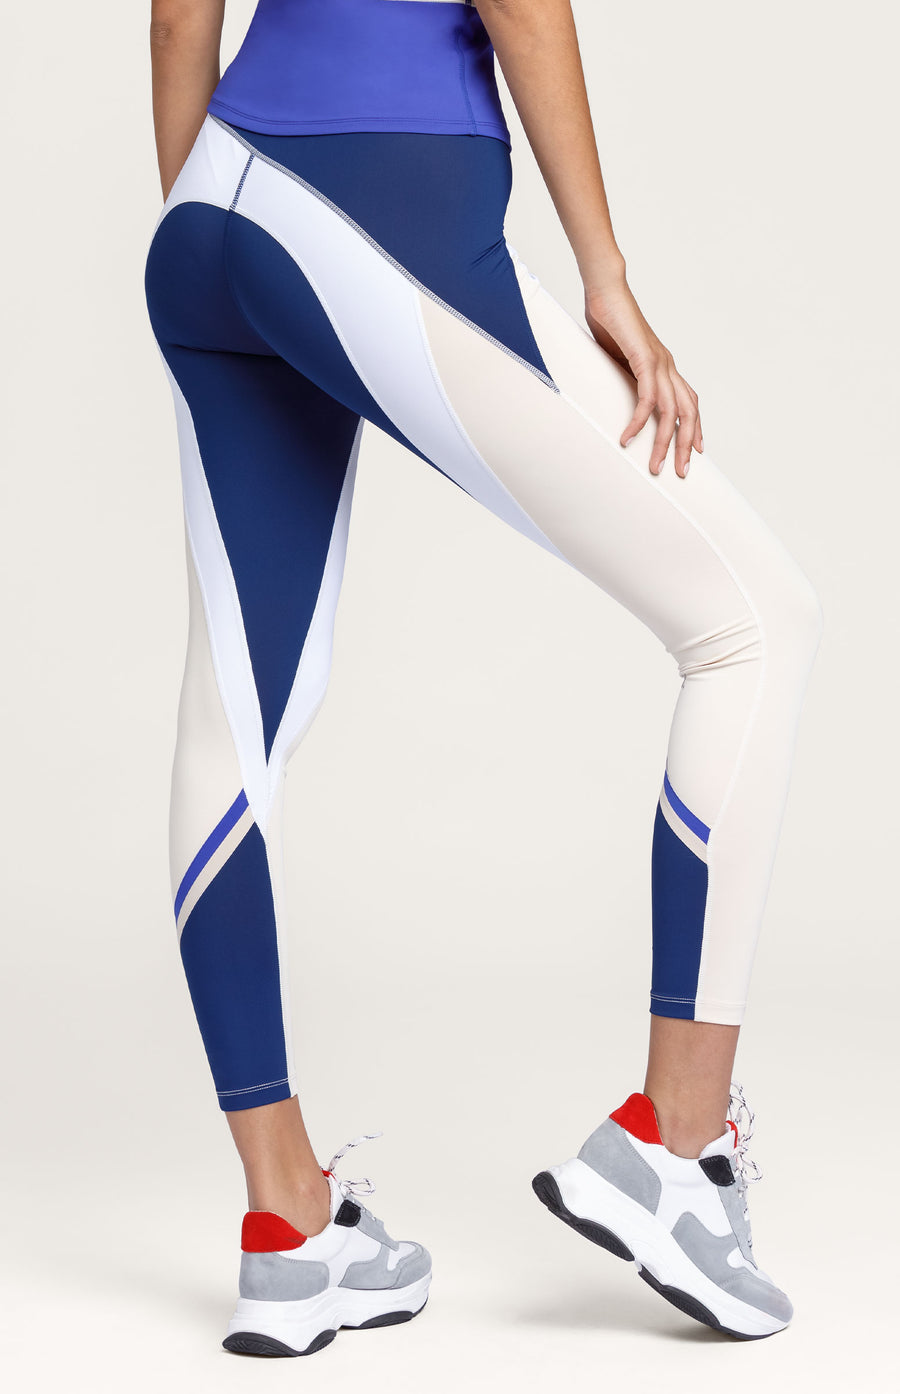 Pavlova Leggings